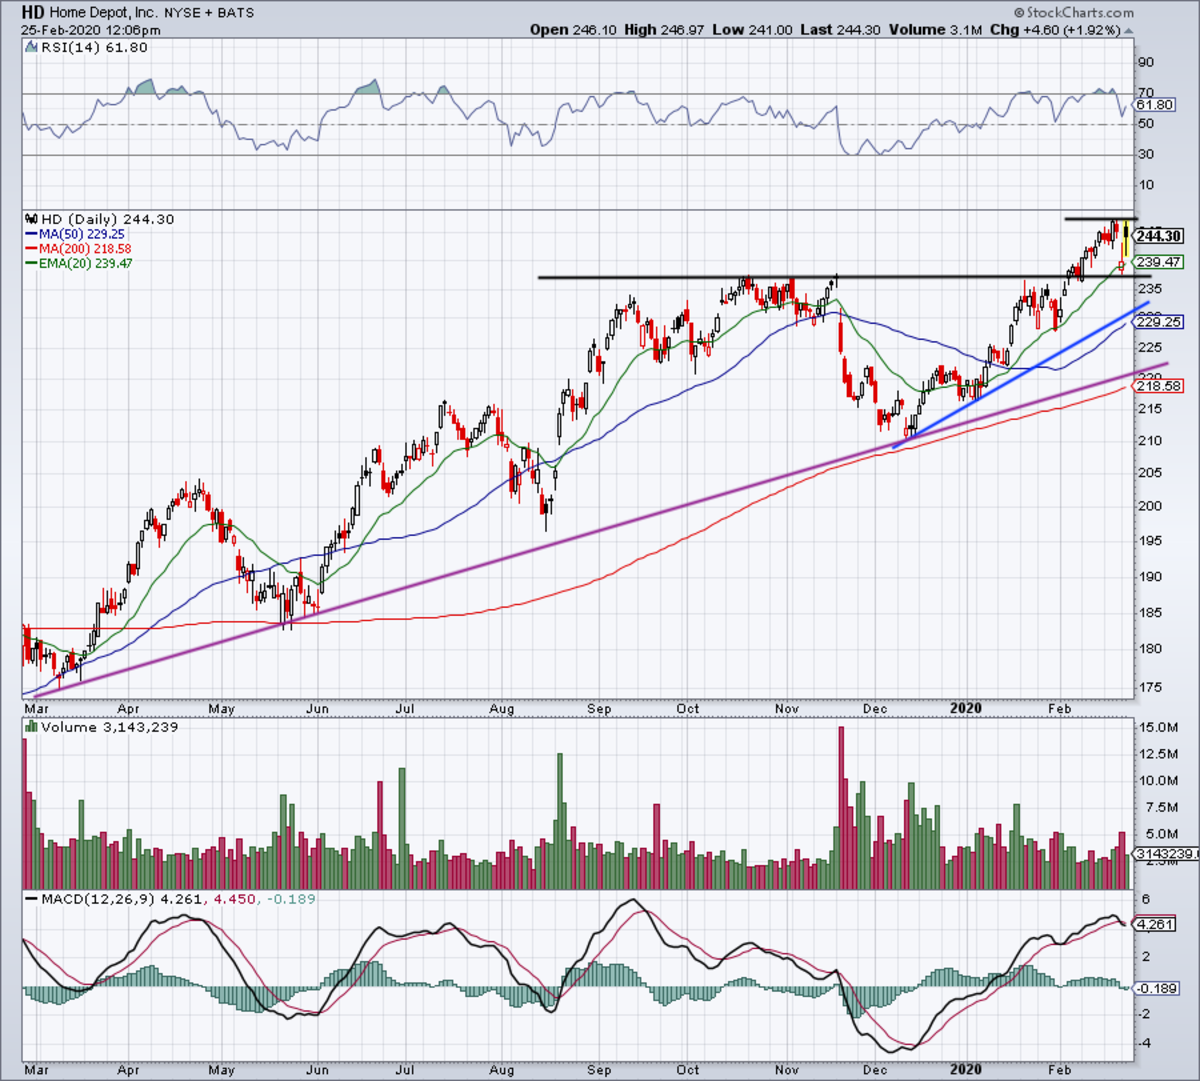 Daily chart of Home Depot stock.